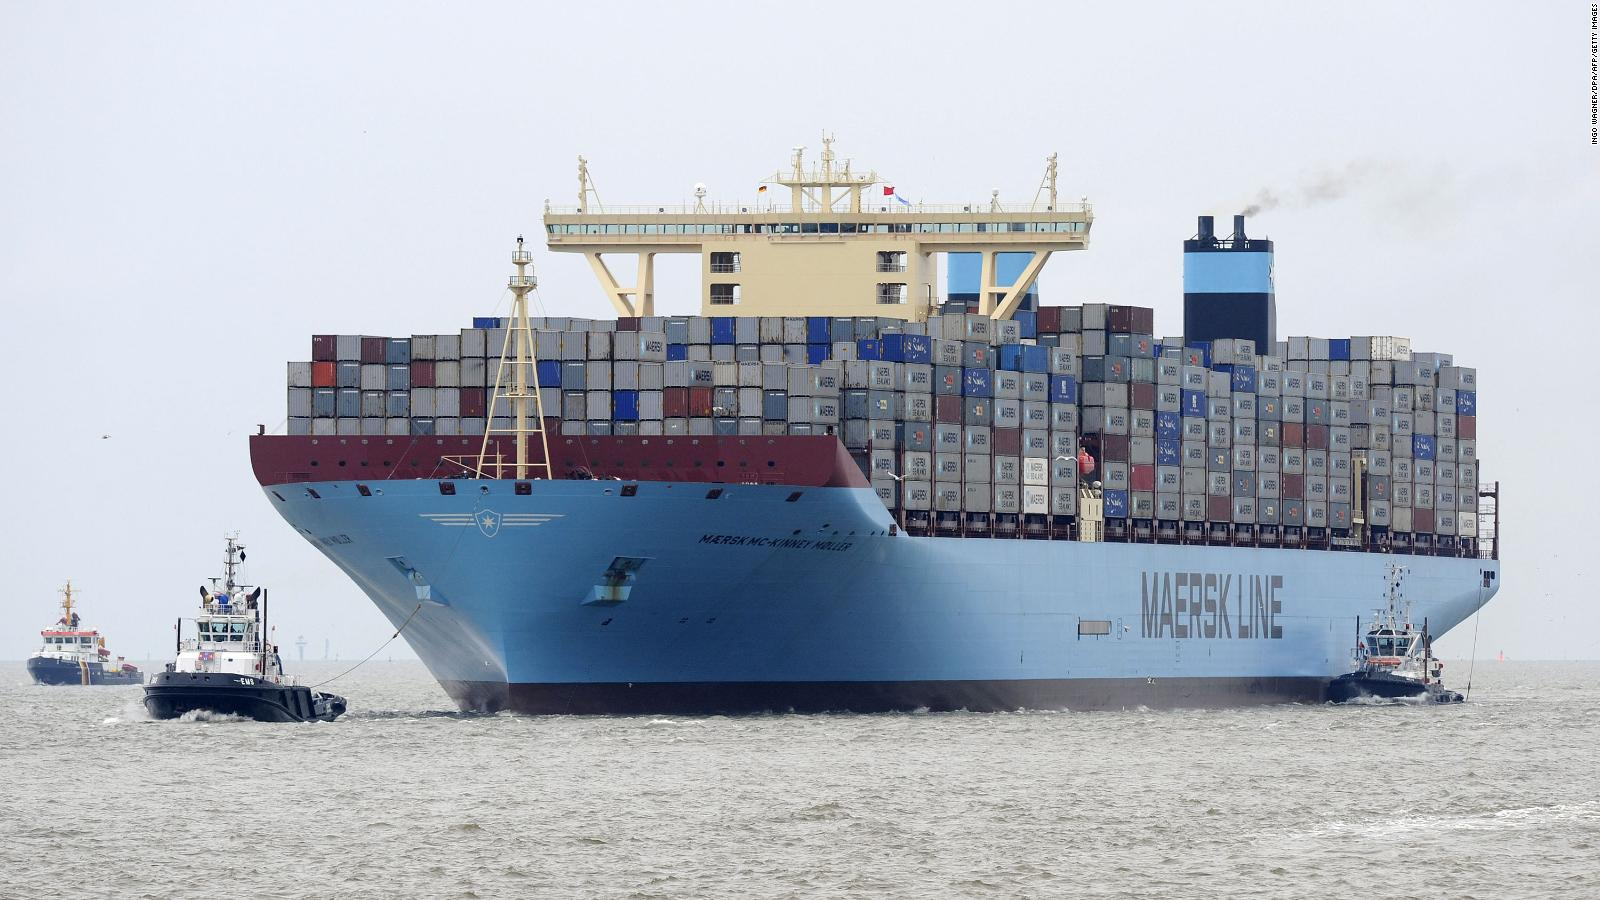 Maersk aims to be carbon neutral by 2050